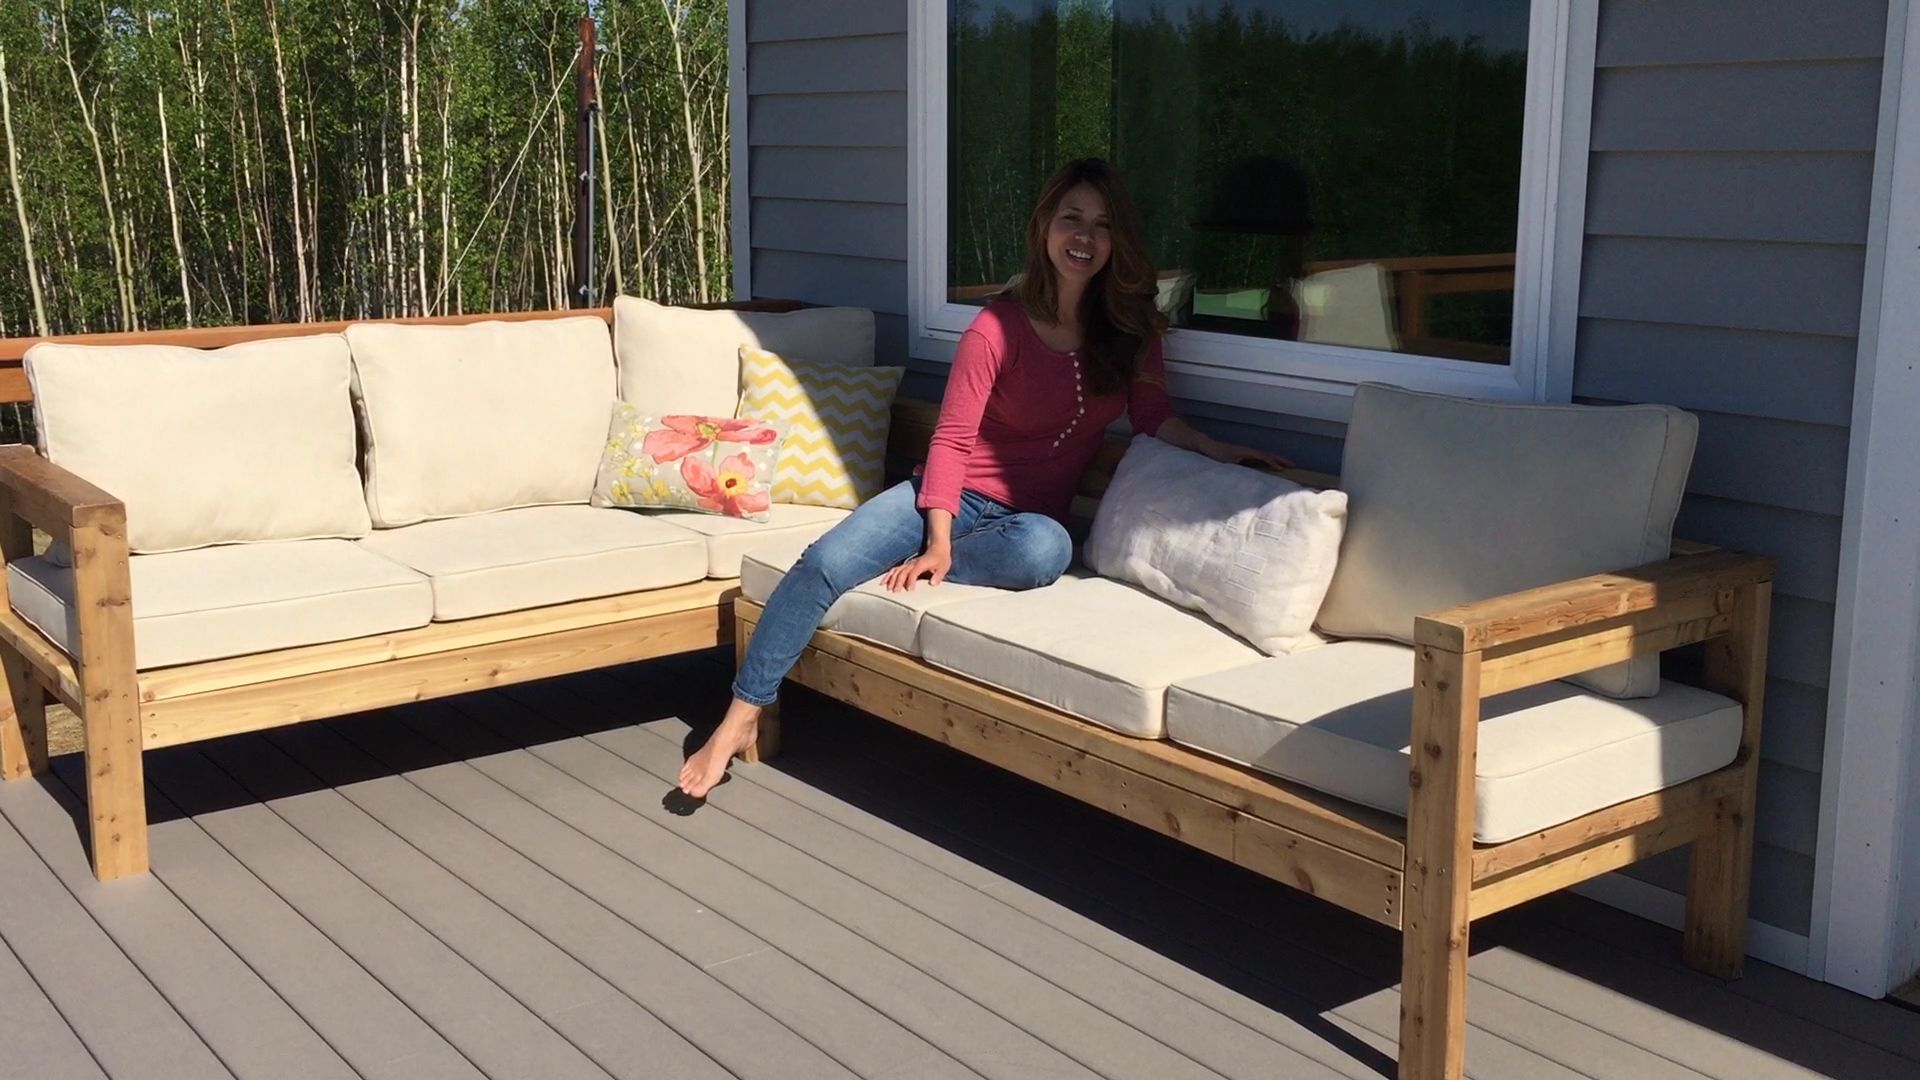 Download Wallpaper Patio Furniture Out Of 2x4